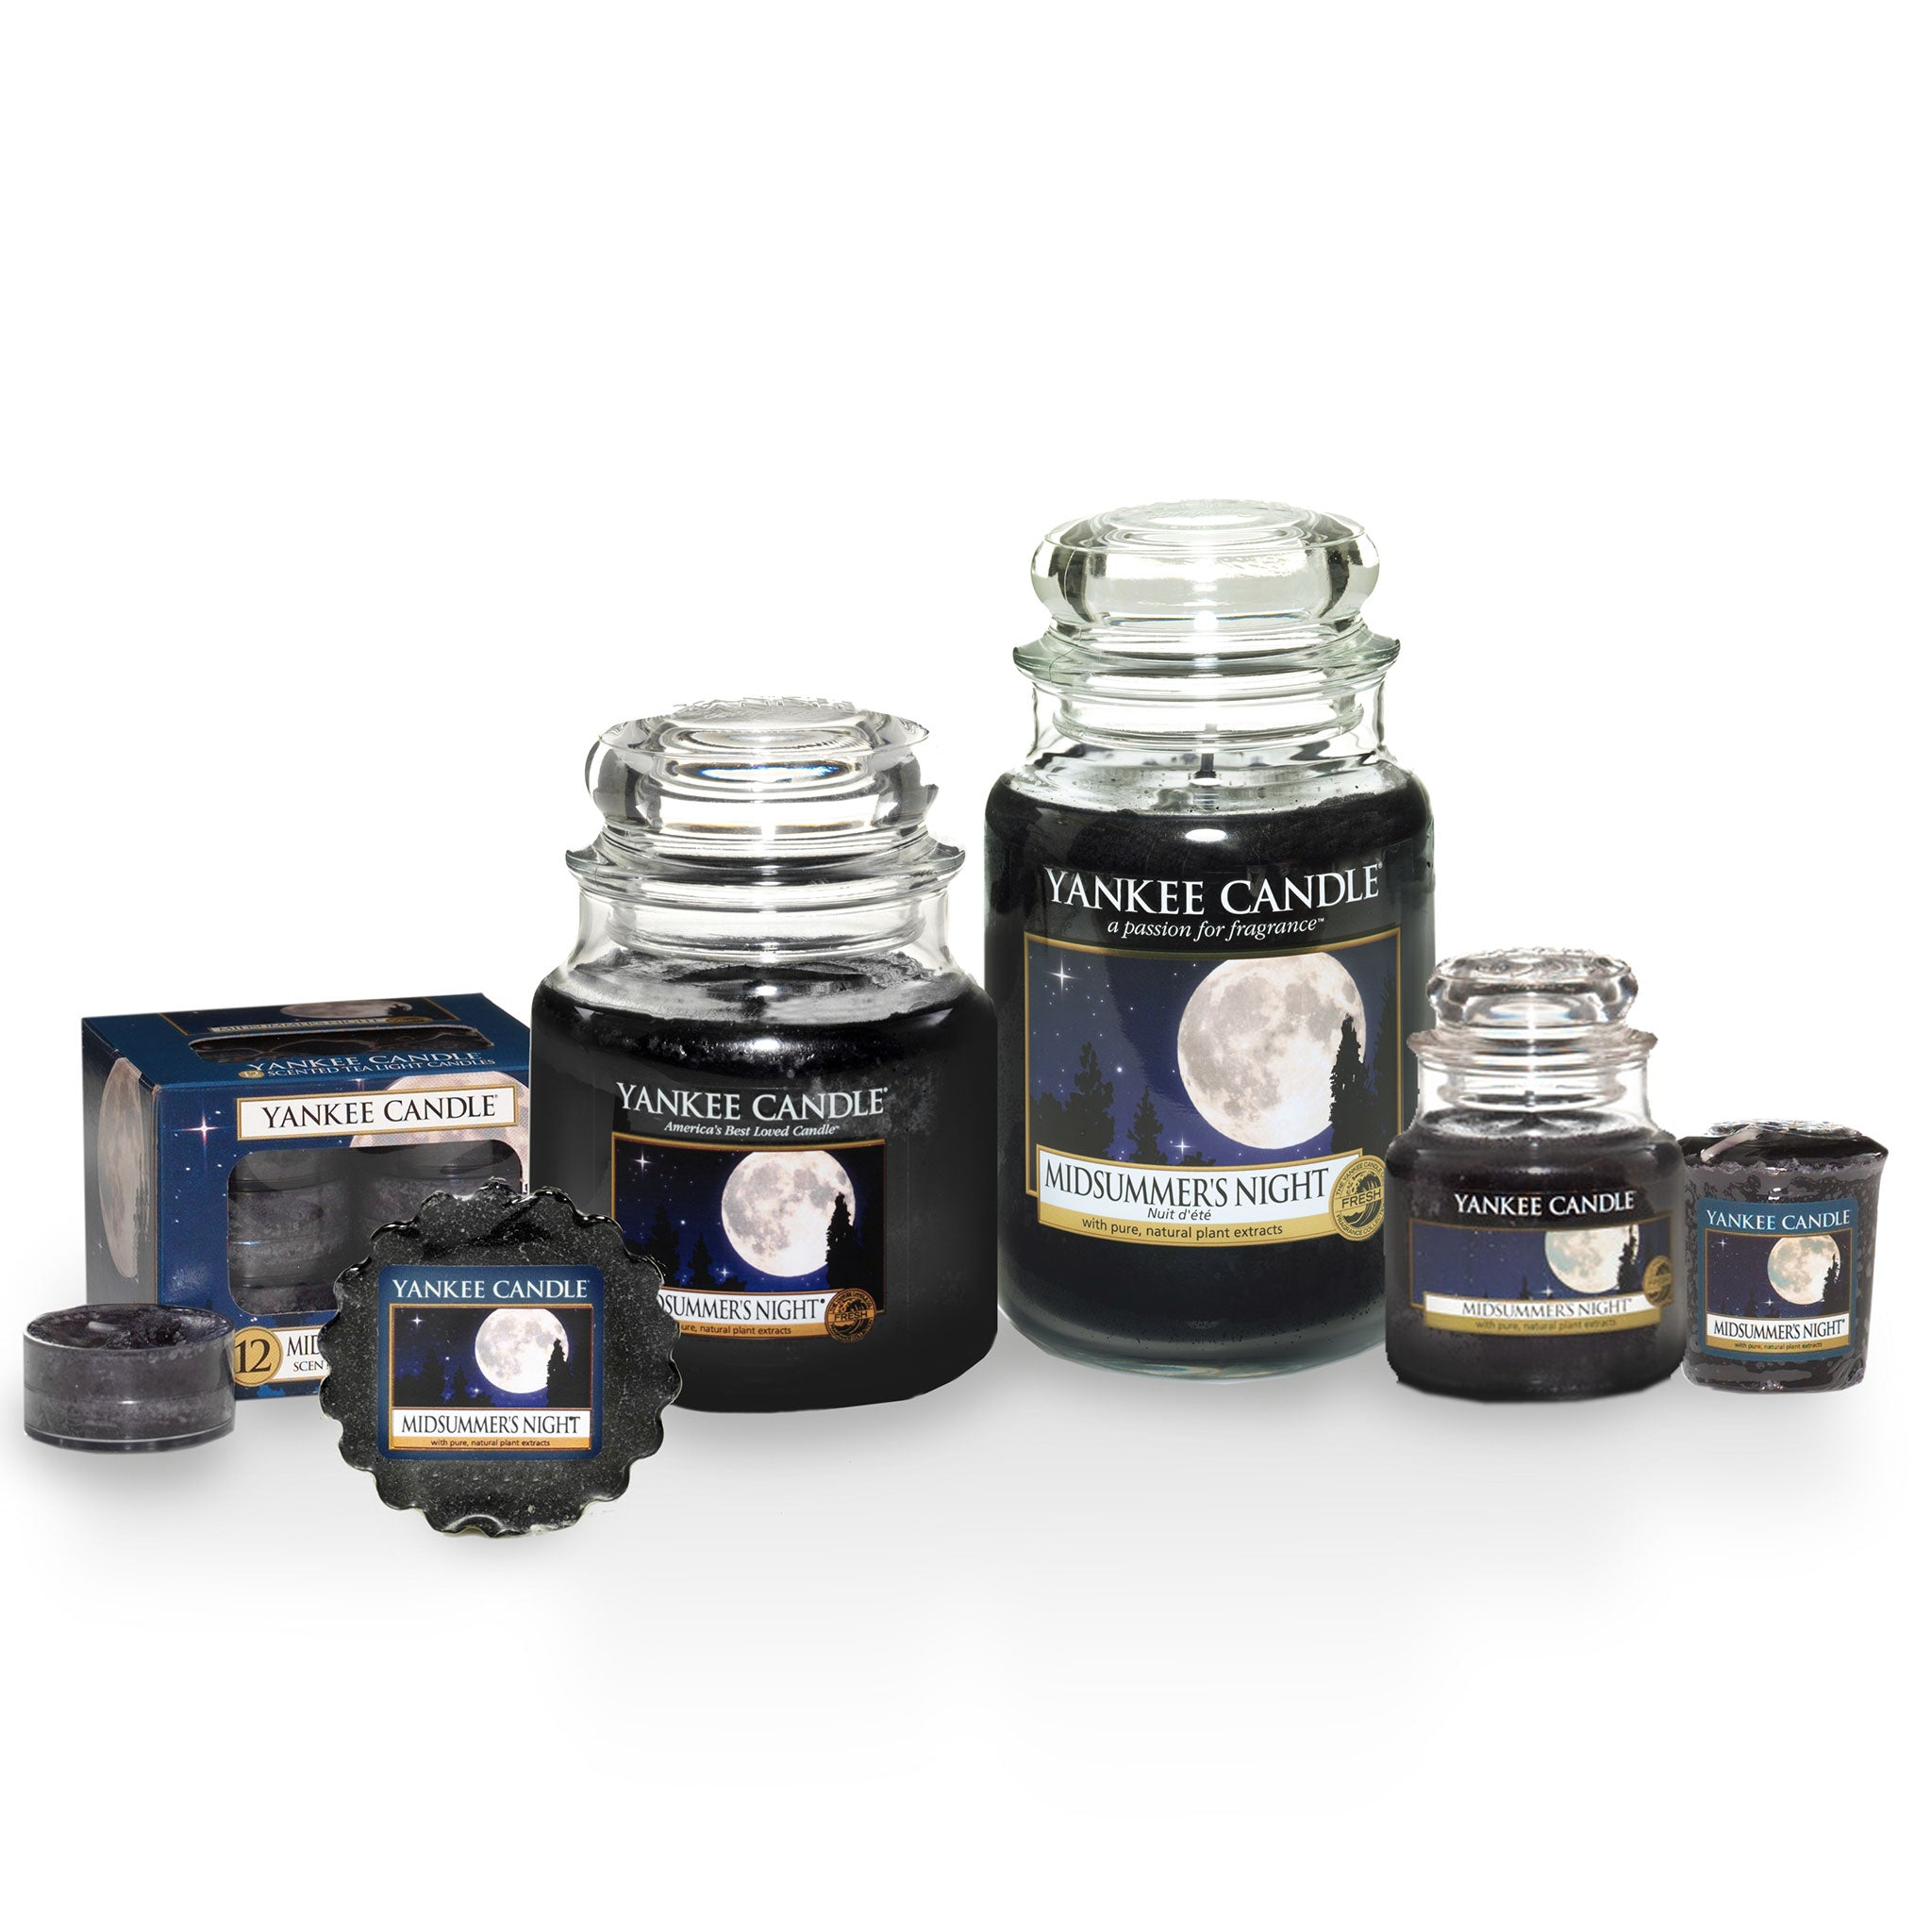 MIDSUMMER'S NIGHT -Yankee Candle- Giara Piccola